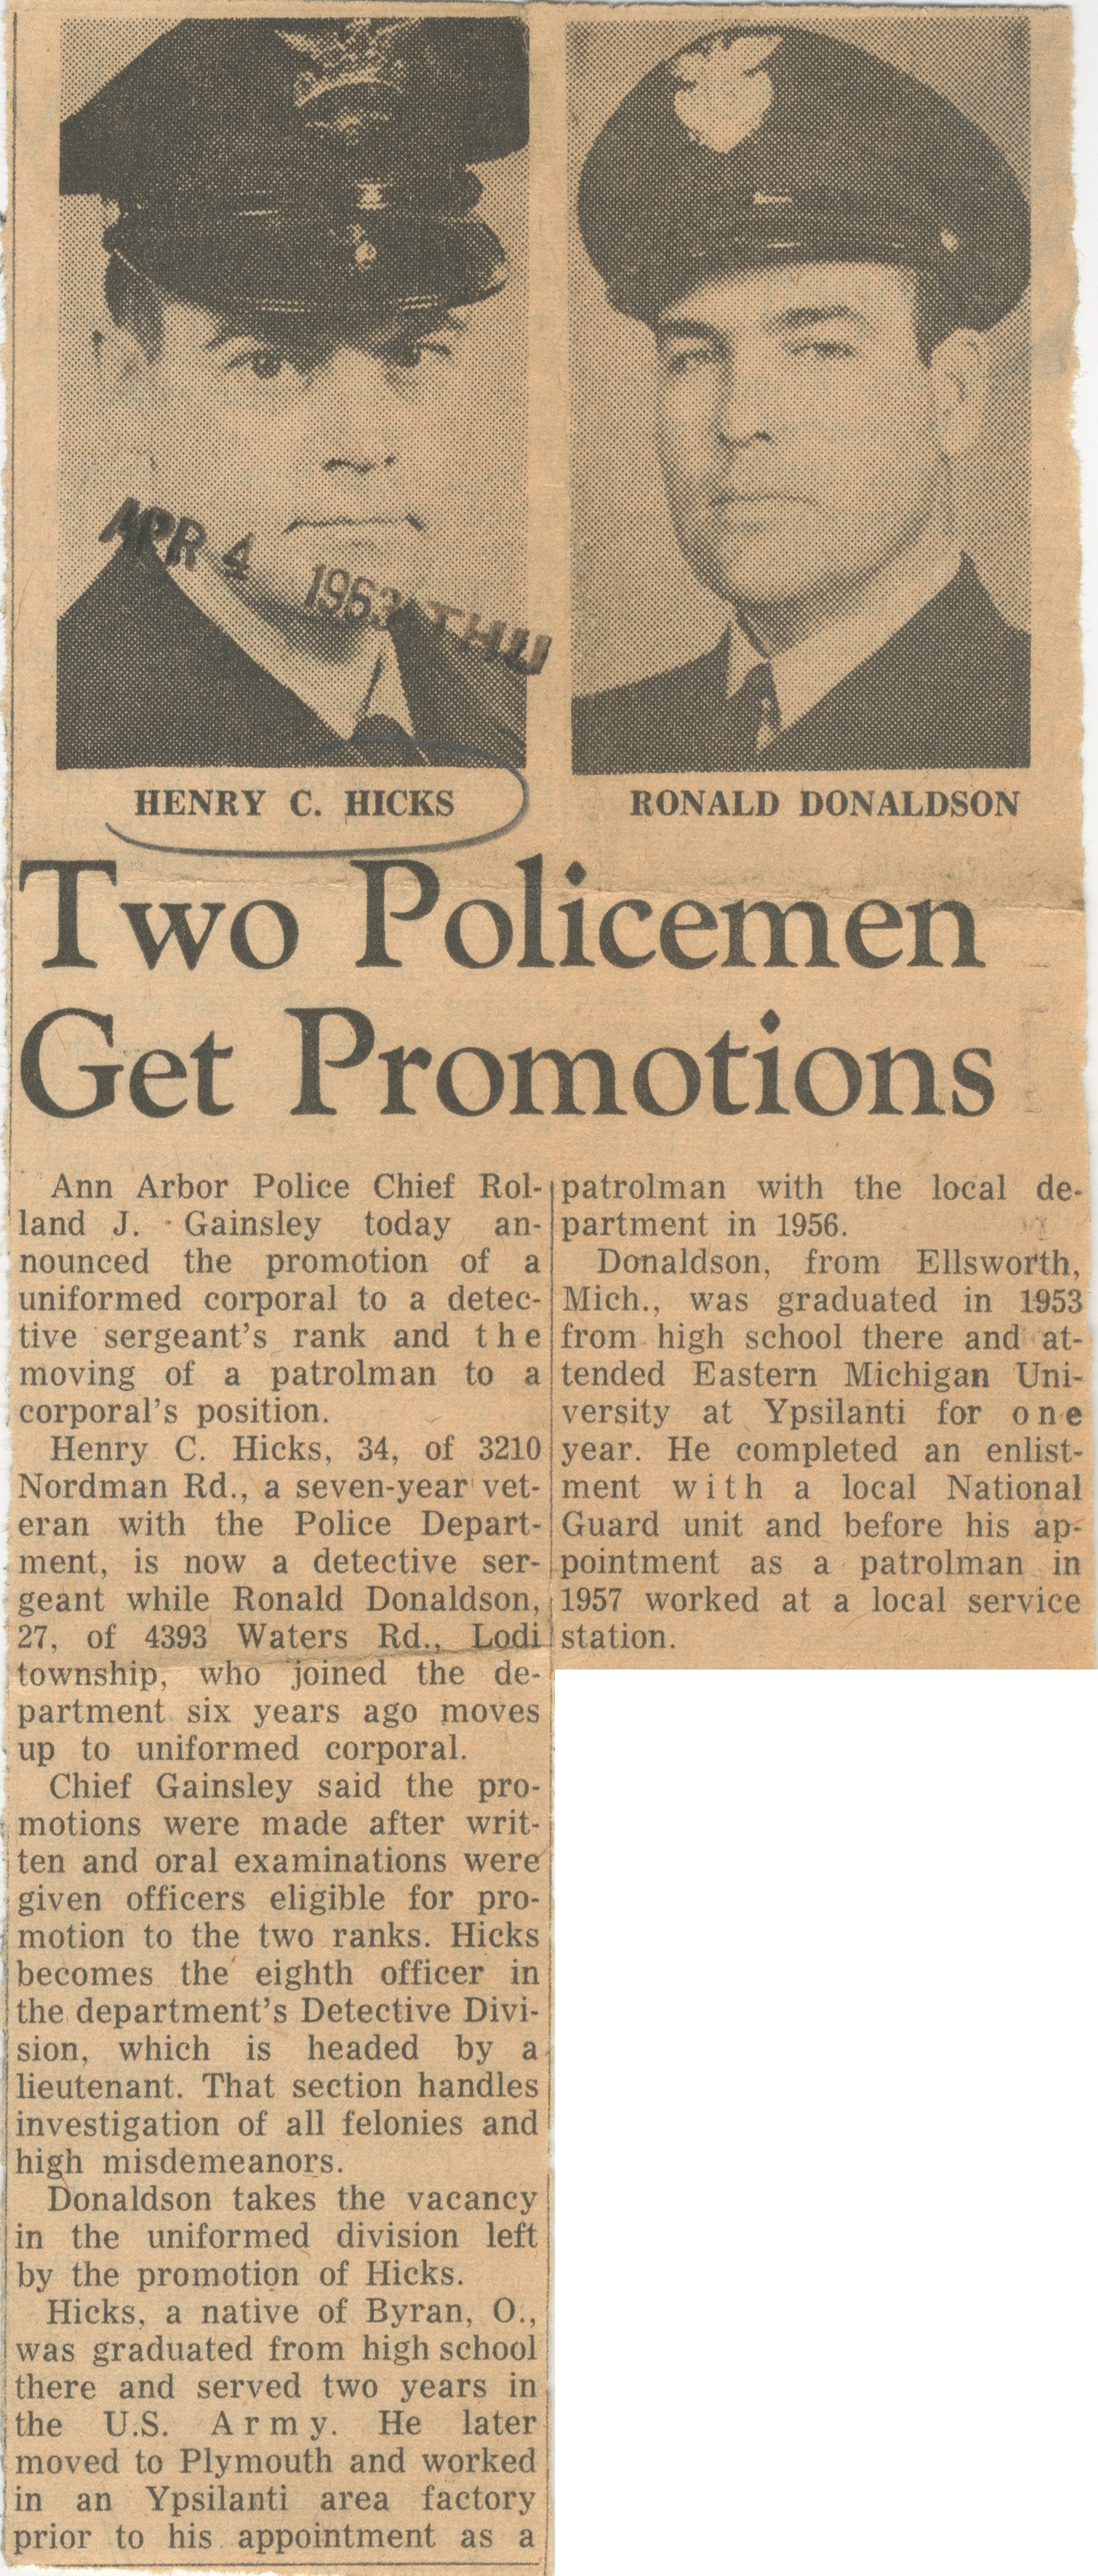 Two Policemen Get Promotions image